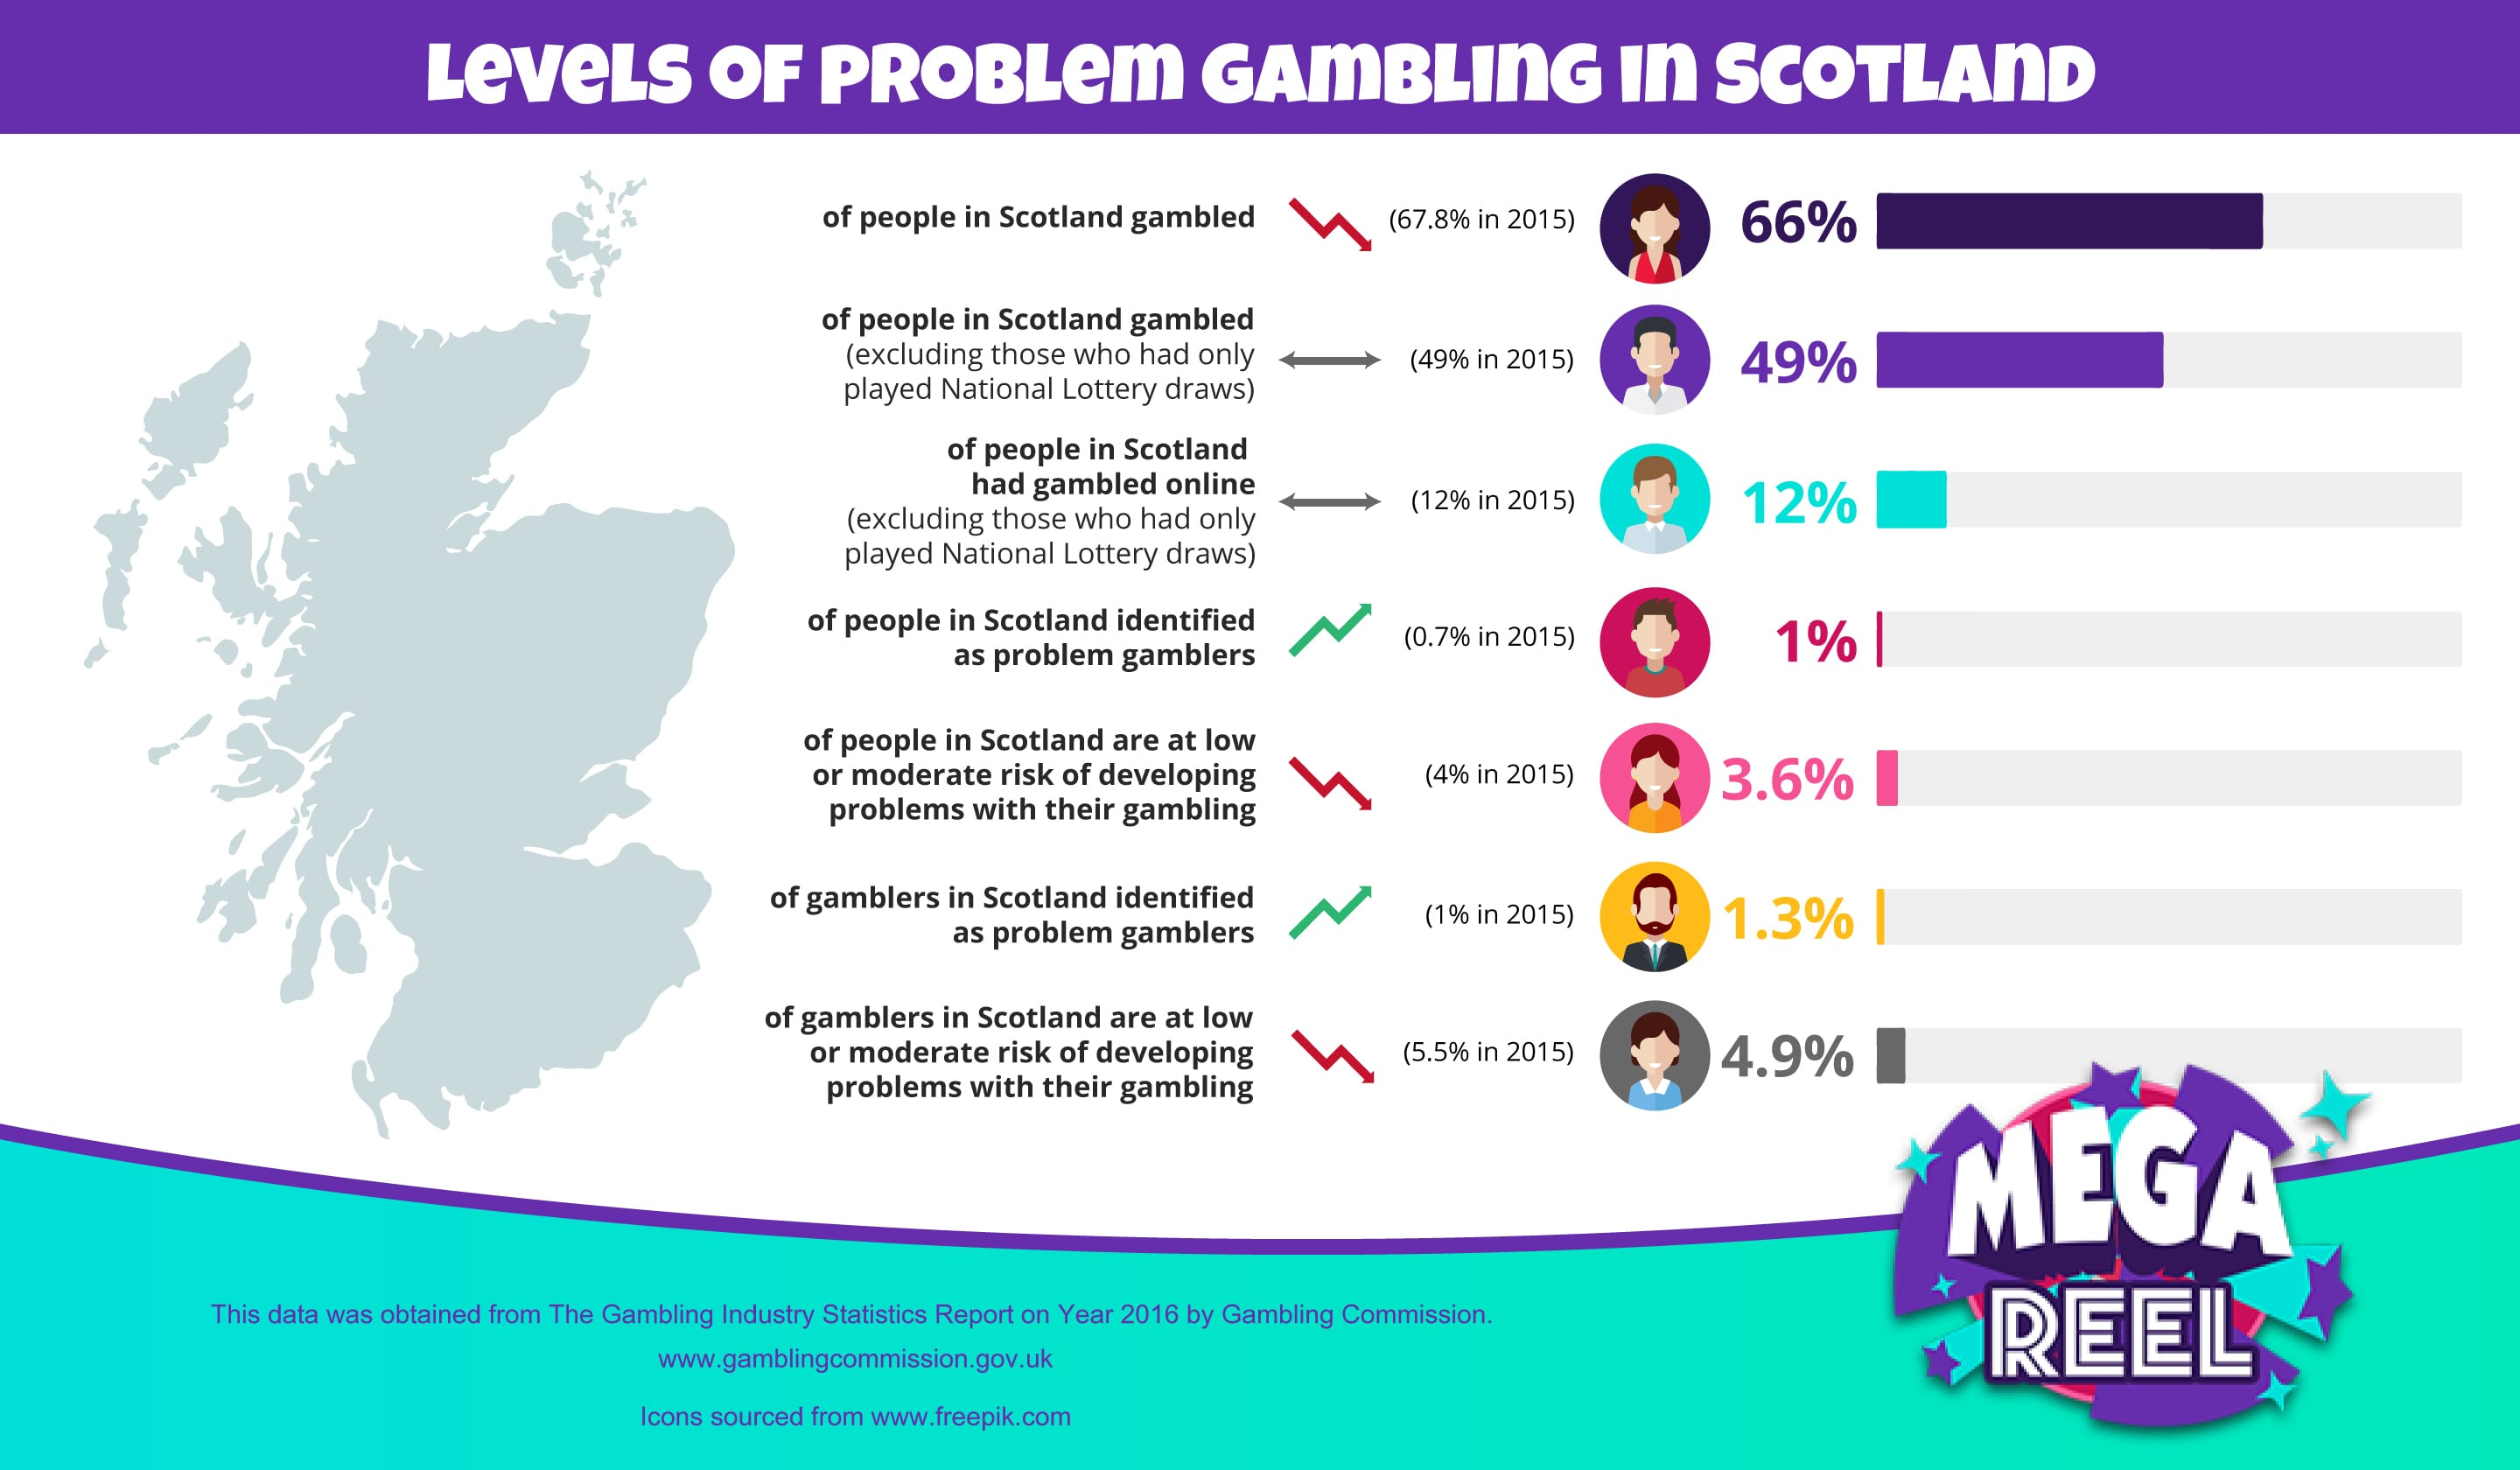 Problem Gambling in Scotland